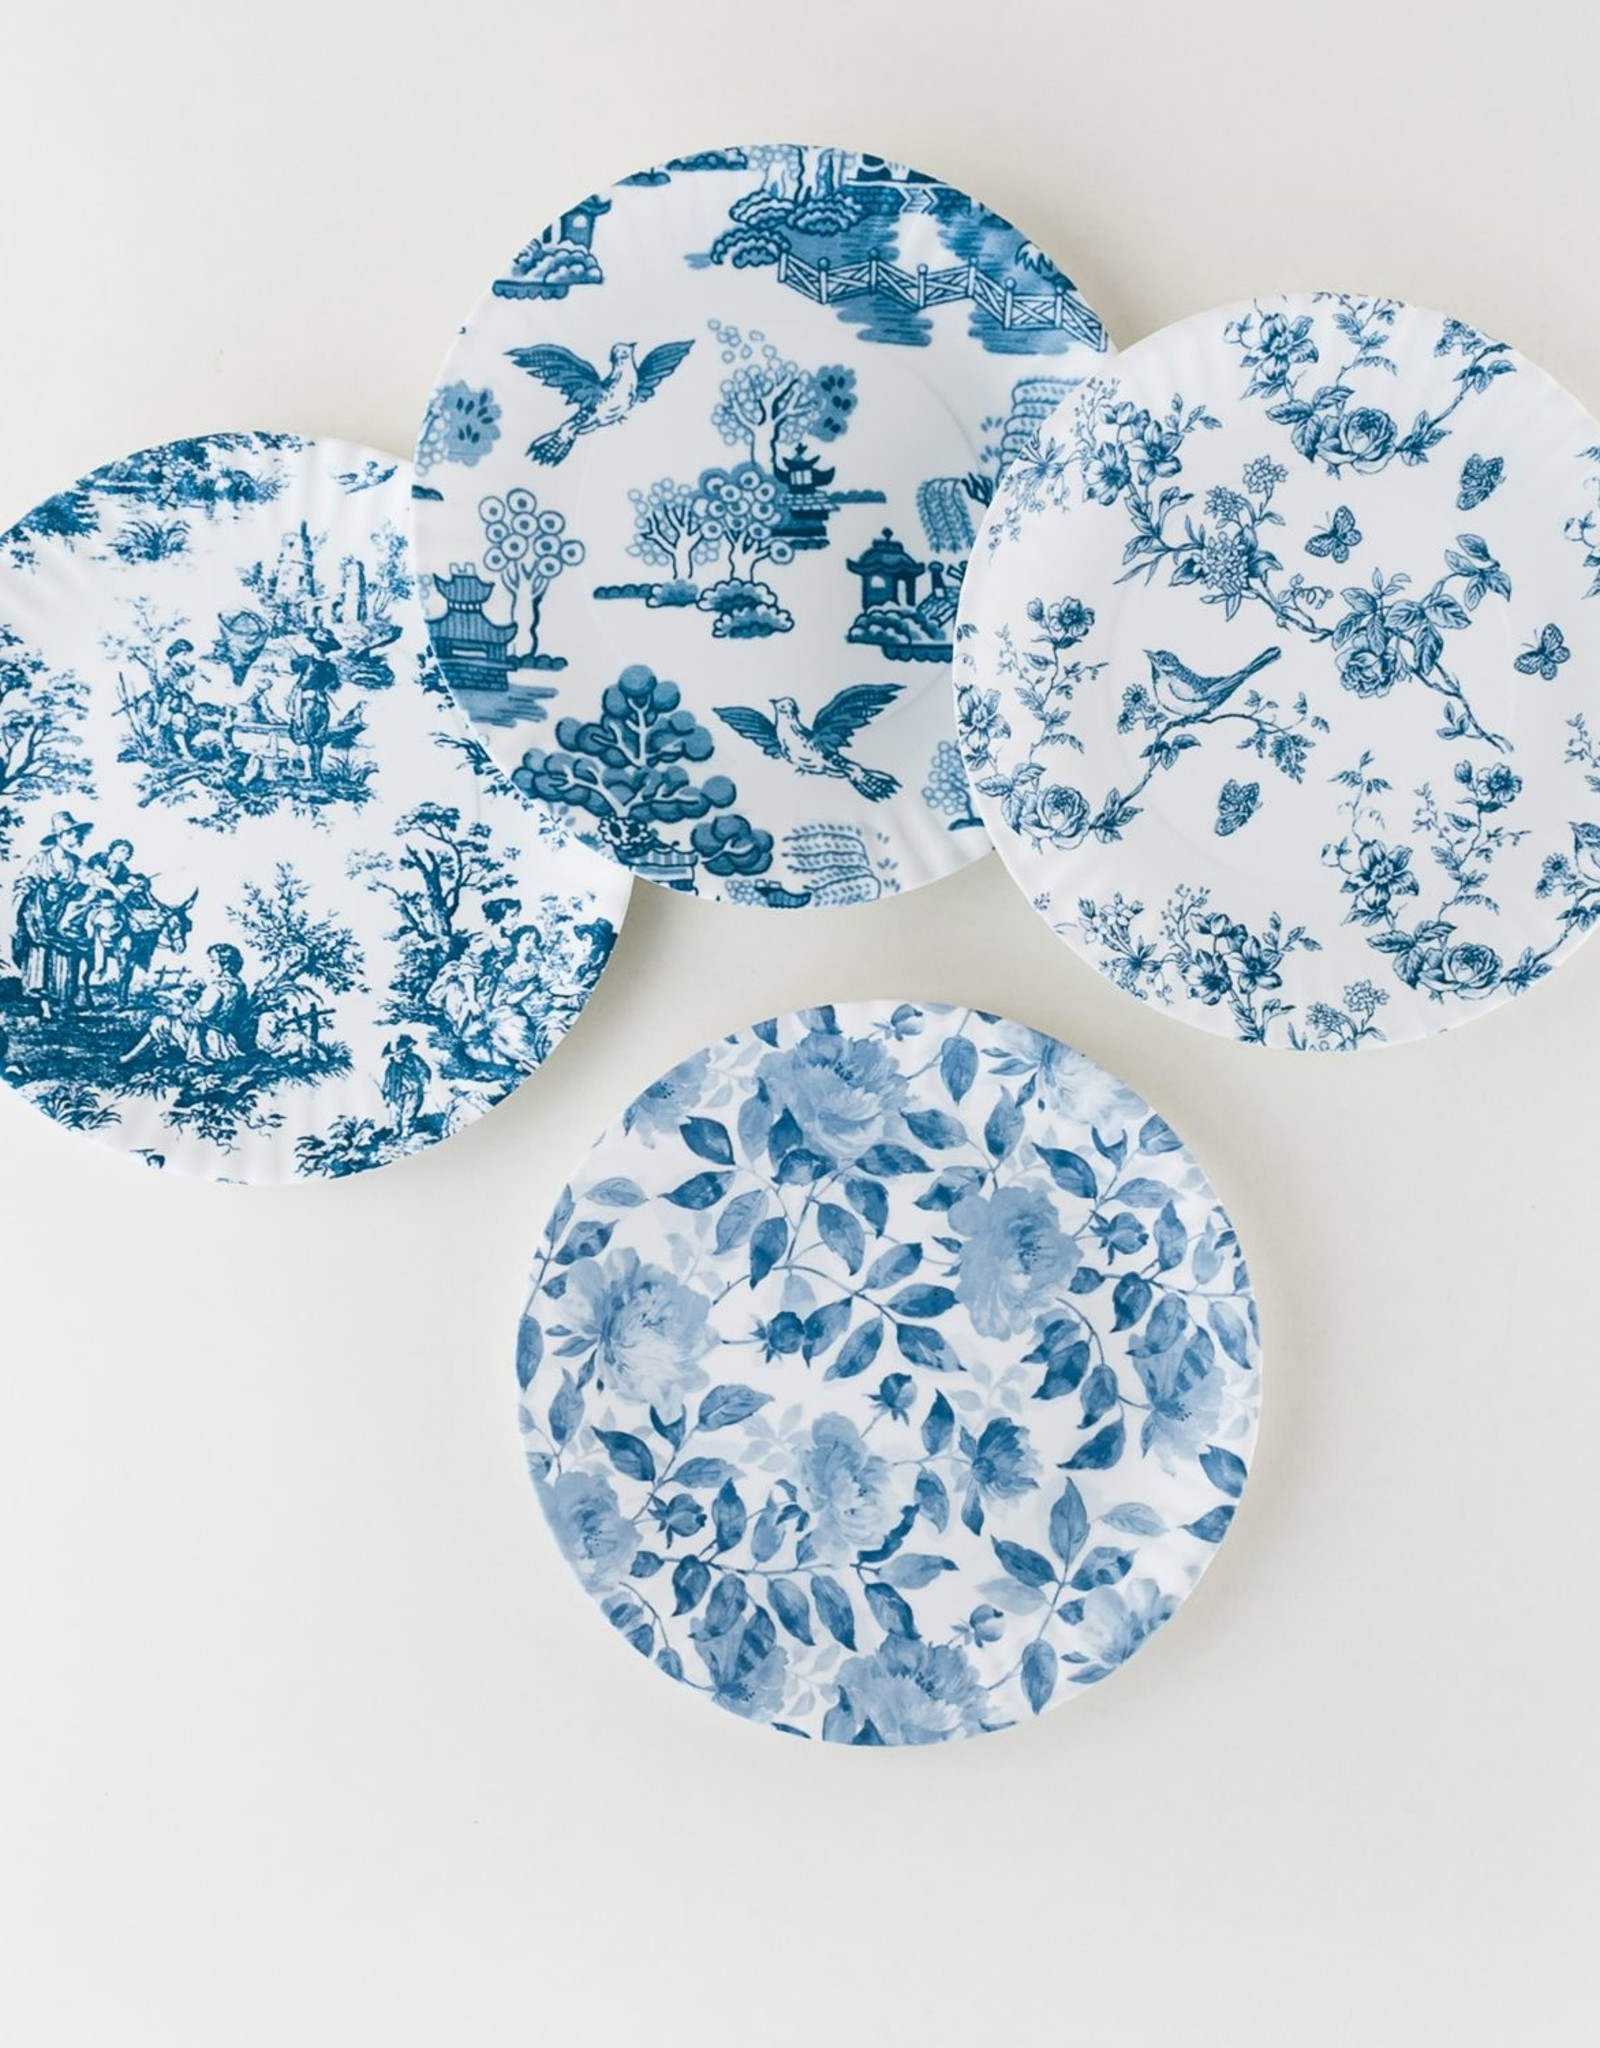 One Hundred 80 Degrees Melamine Blue & White Chinoiserie Plates S/4